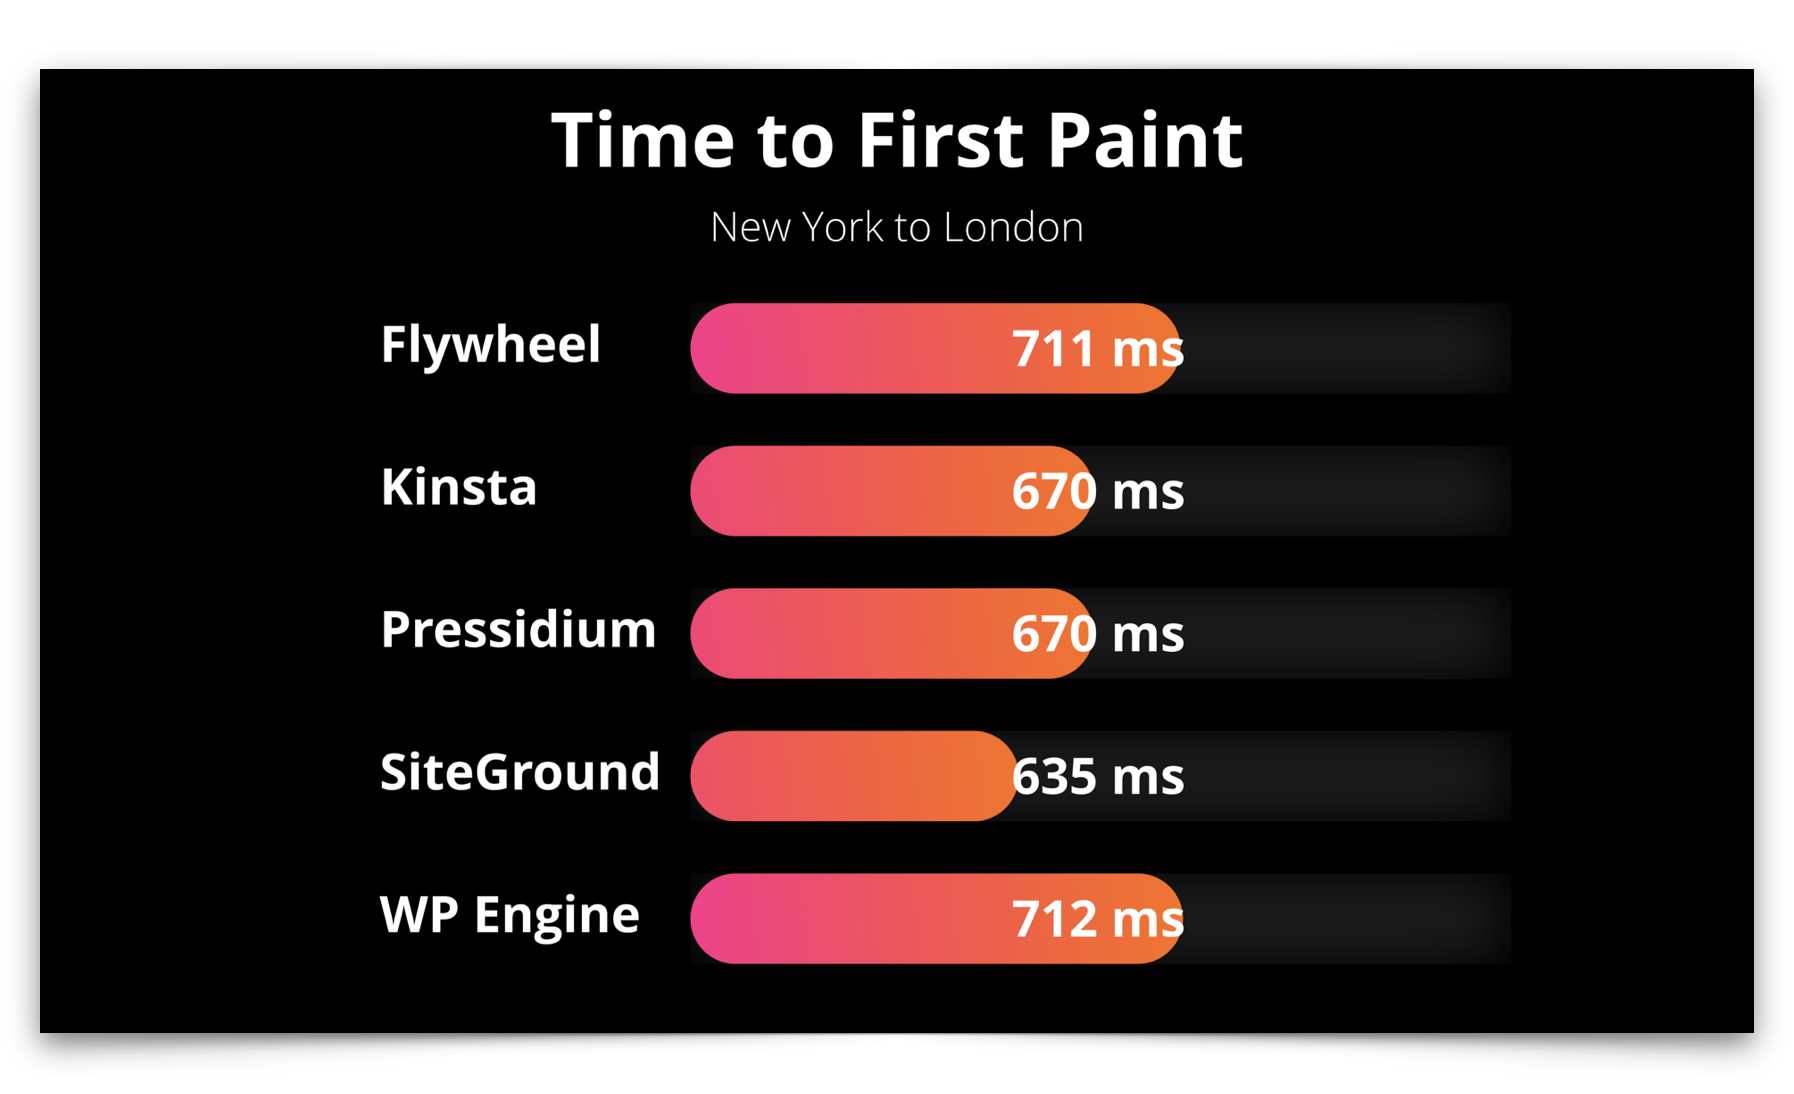 Managed WordPress time to first paint international test results showing SiteGround with the fastest average timings